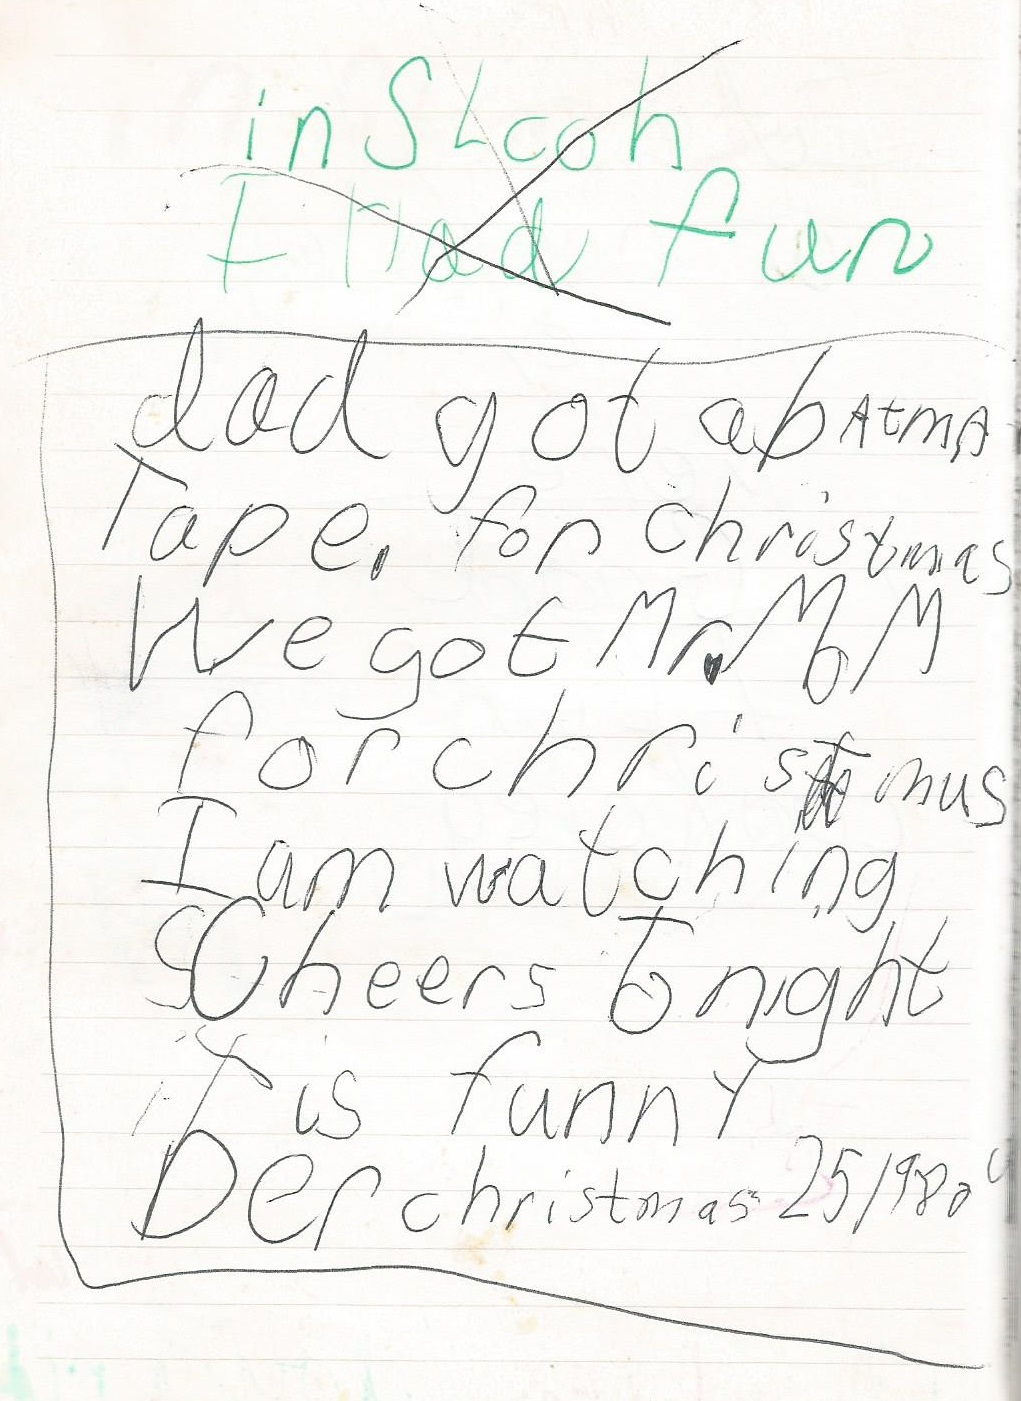 journal entry in author's diary from December 25, 1989 saying what her family got for Christmas